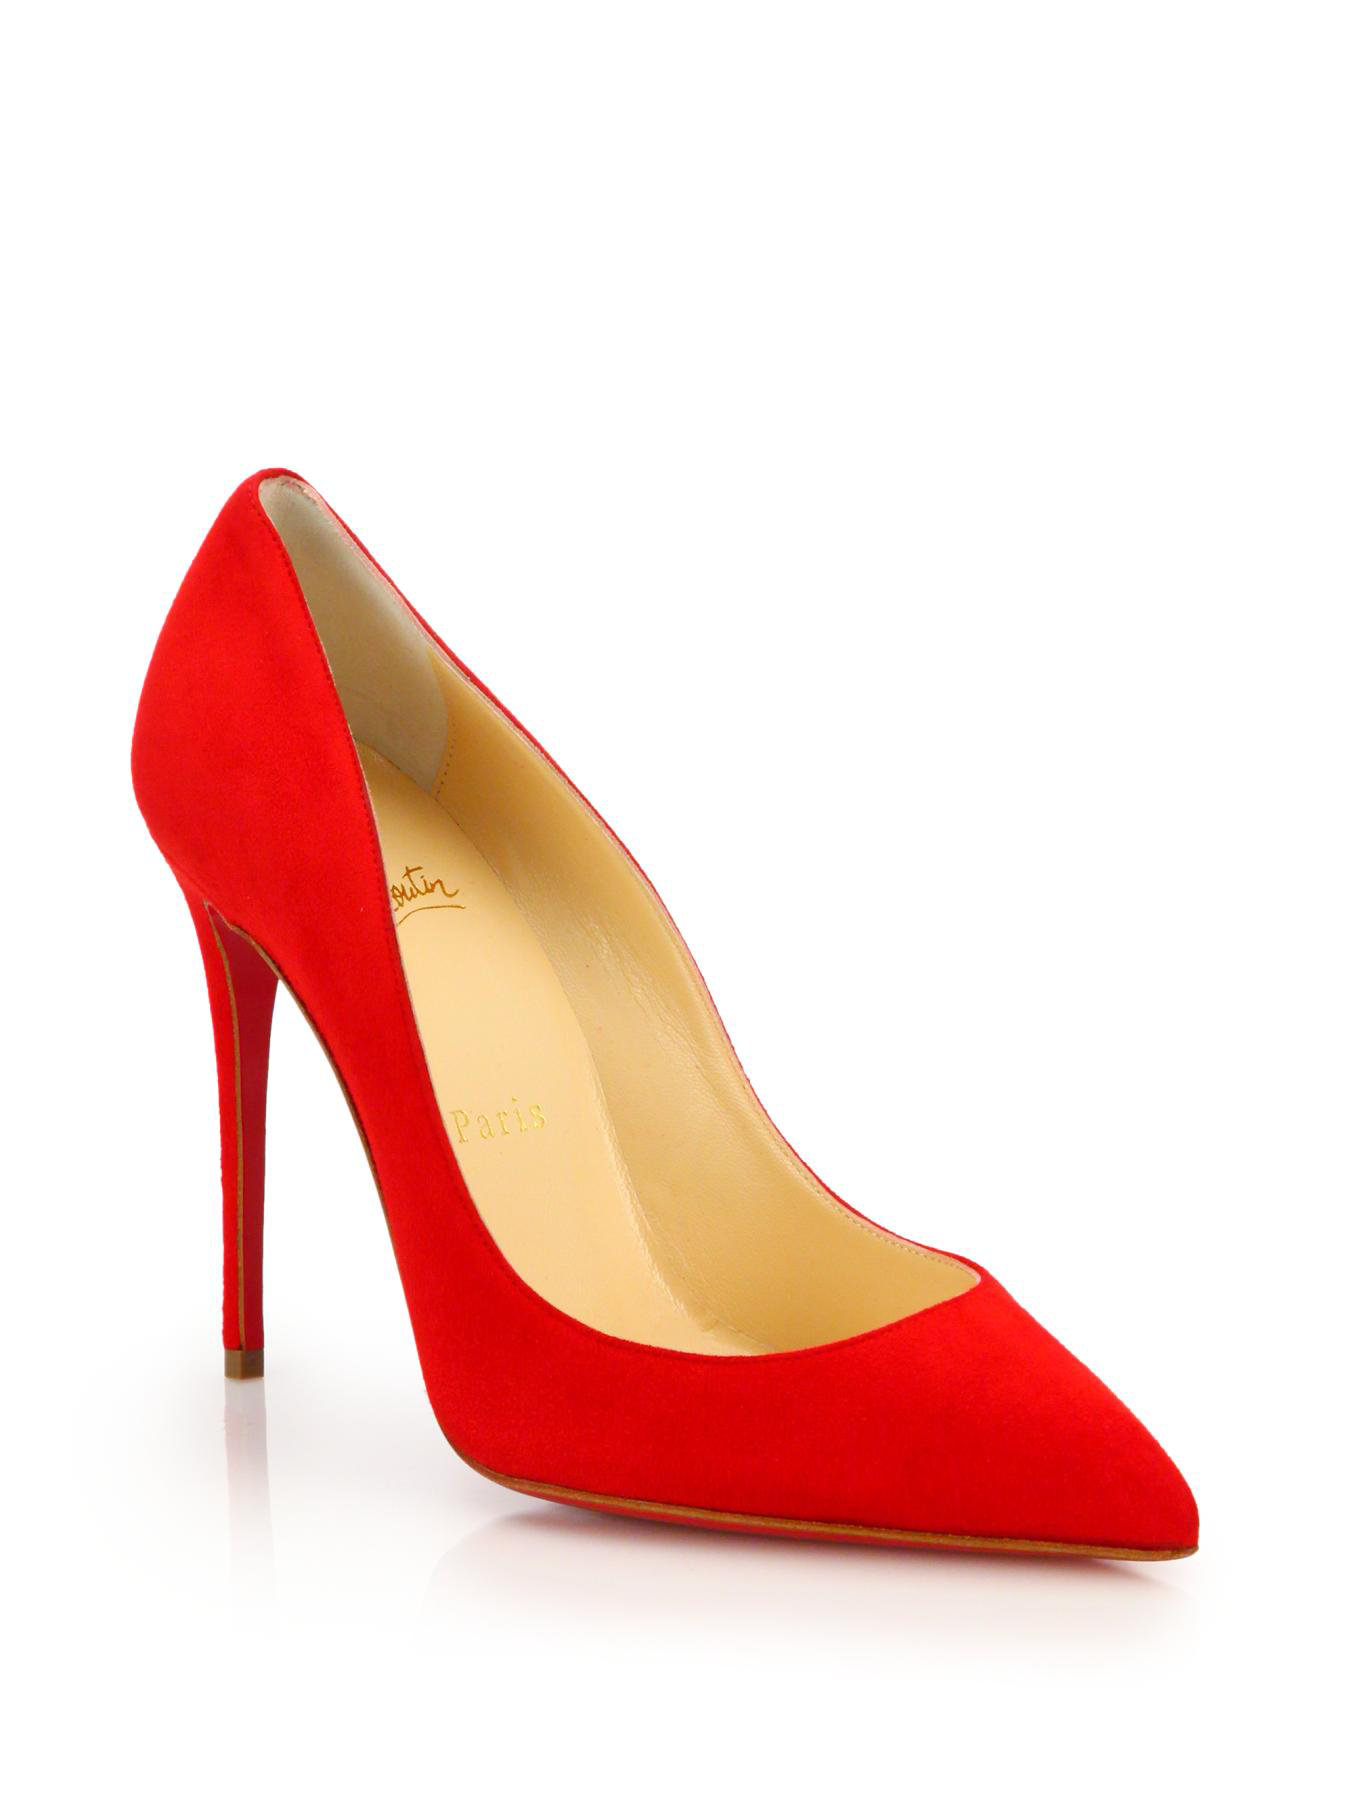 Lyst Christian Louboutin Pigalle Follies Suede Pumps In Red